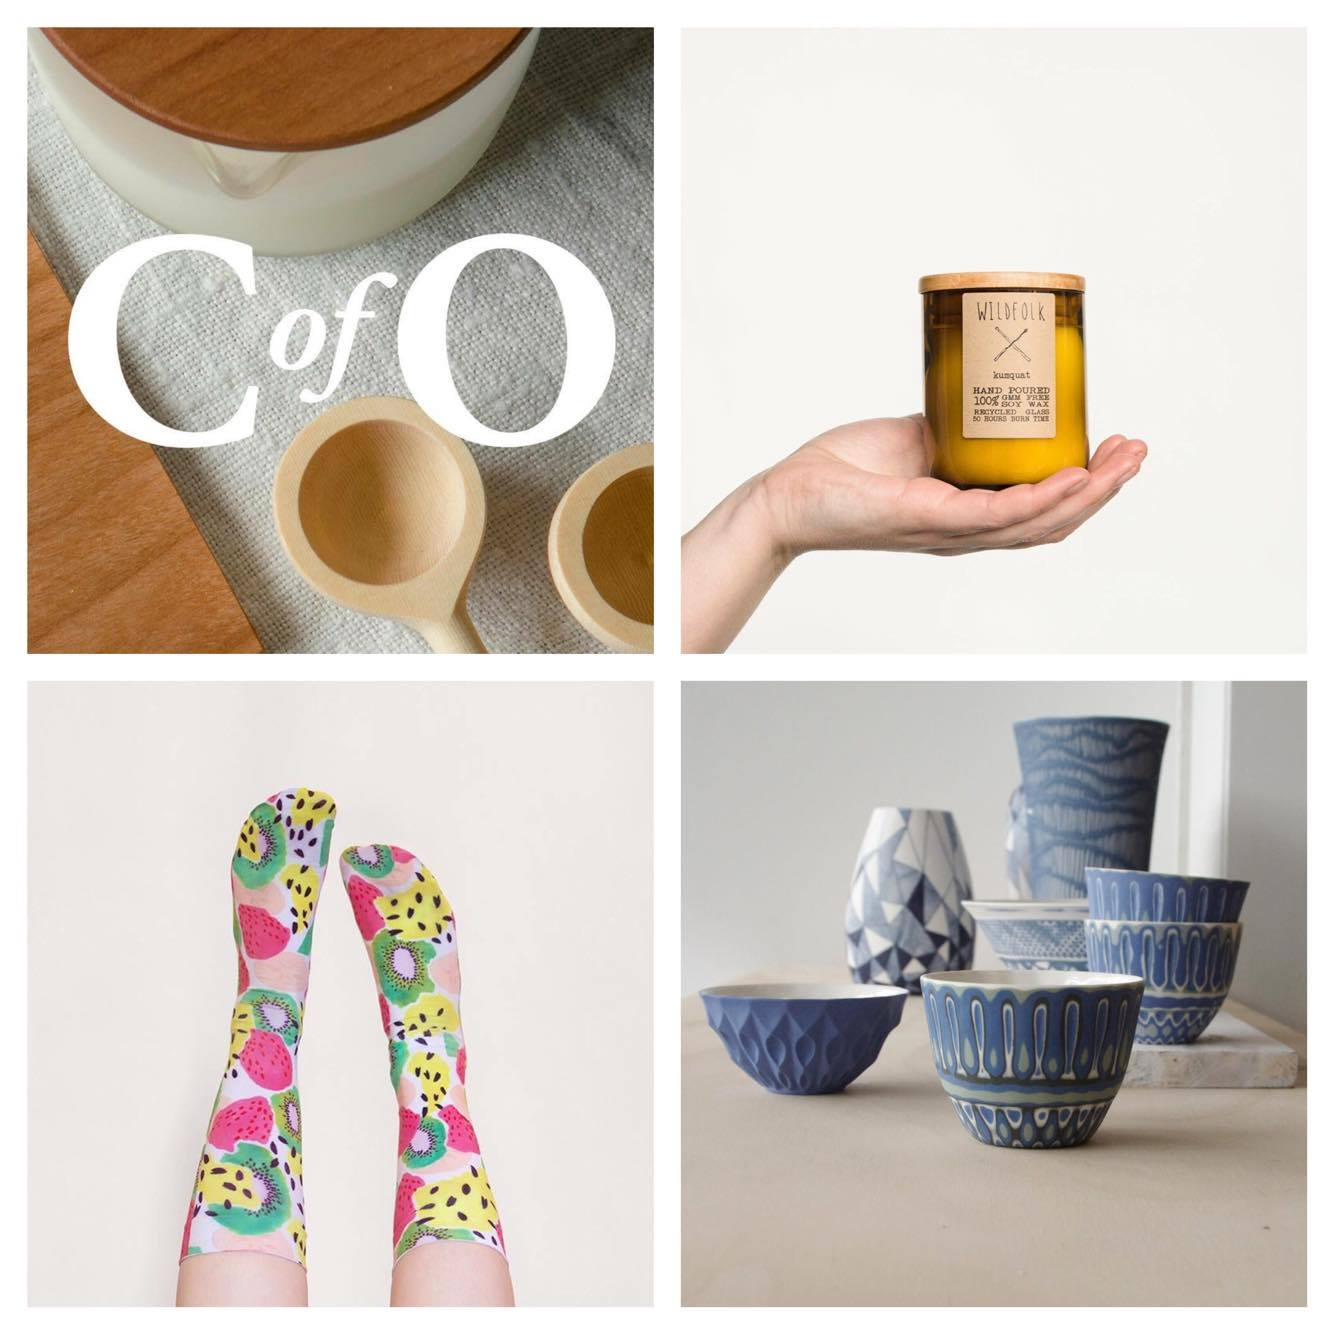 Council of Objects feature 100% Australian Made products by local designers and artisans